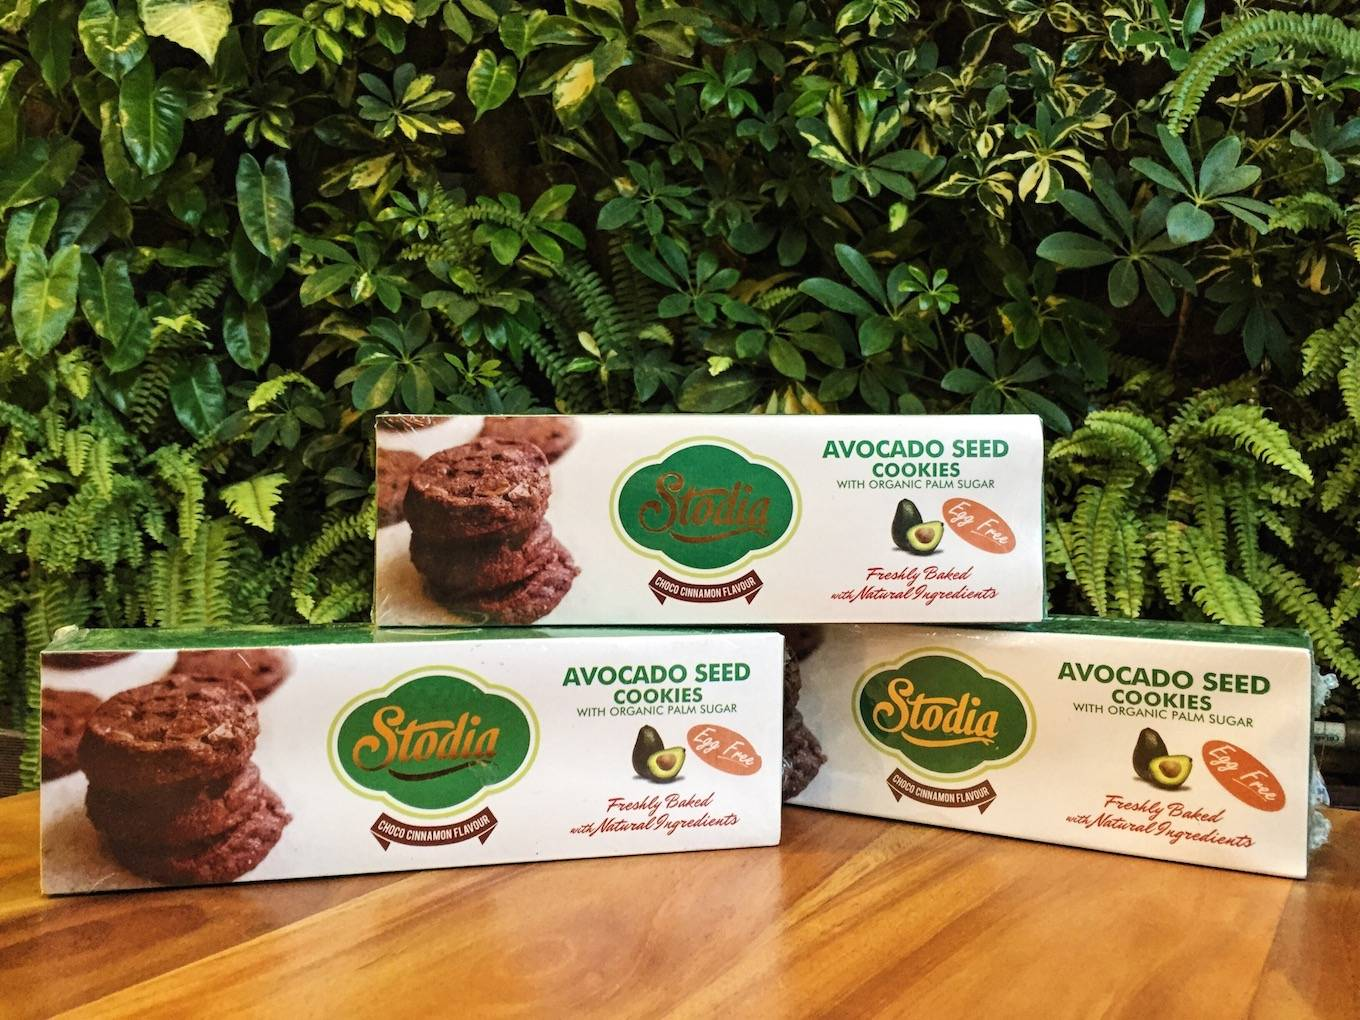 STODIA Avocado Seed Cookies